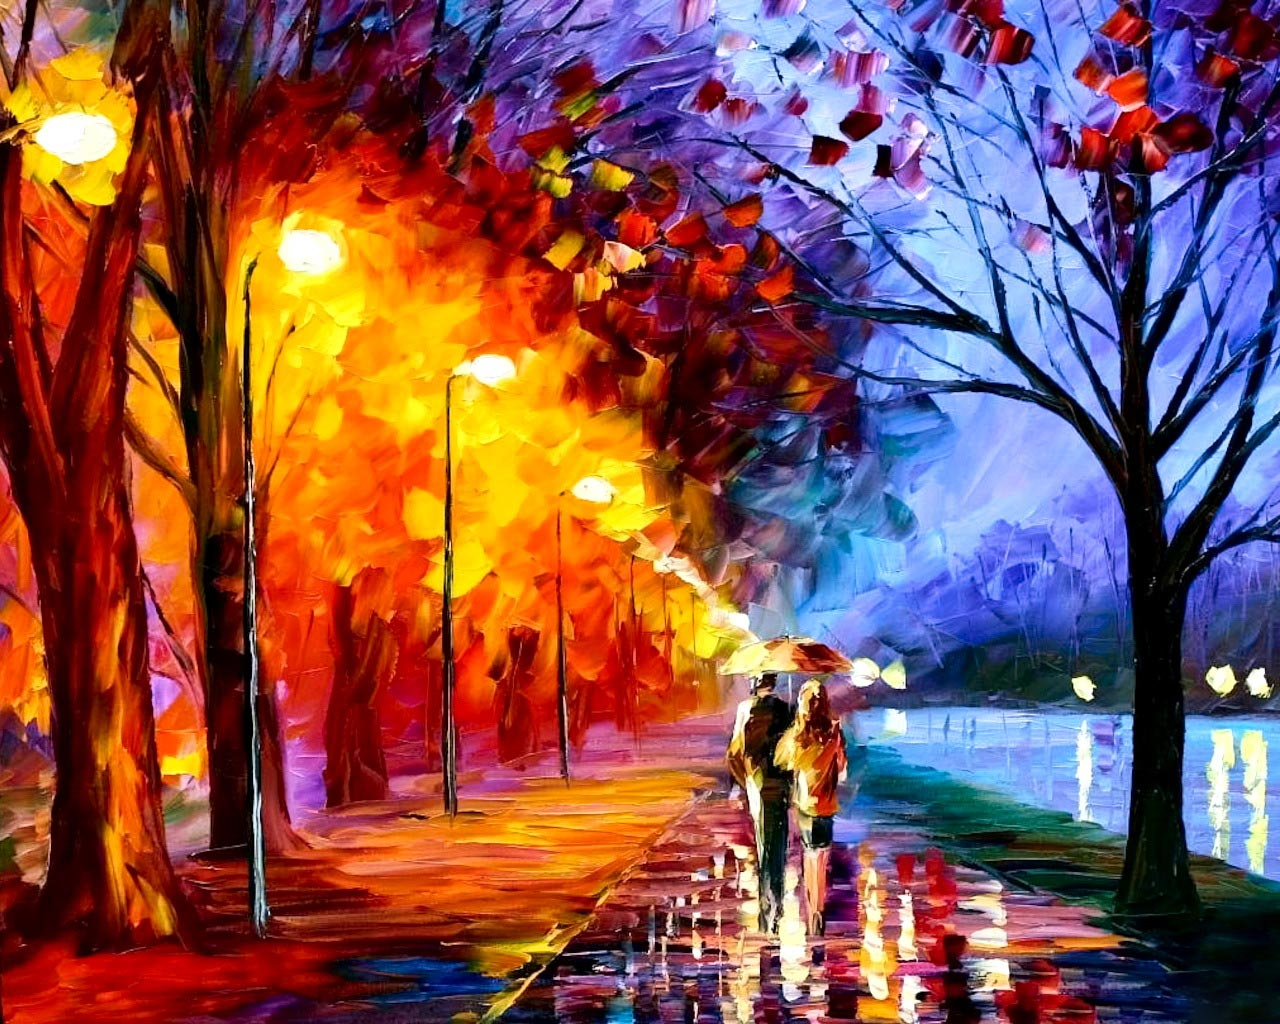 Autumn Oil Painting Wallpaper High Quality WallpapersWallpaper 1280x1024